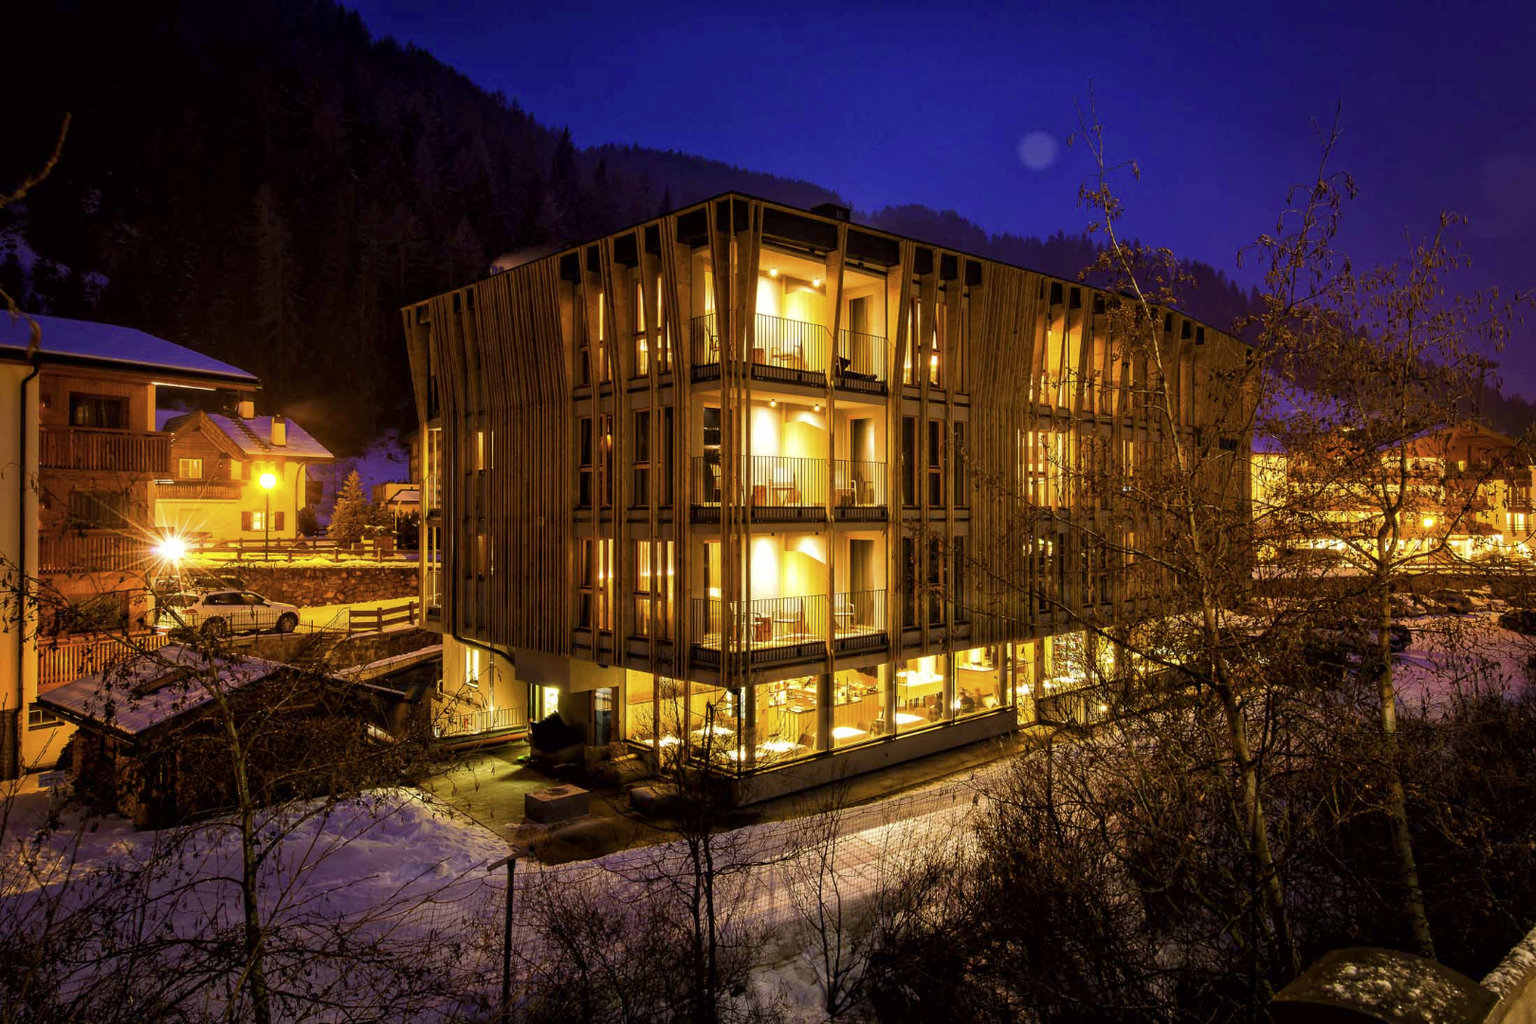 Eden selva mountain design hotel alfred tschager photography for Wolkenstein design hotel